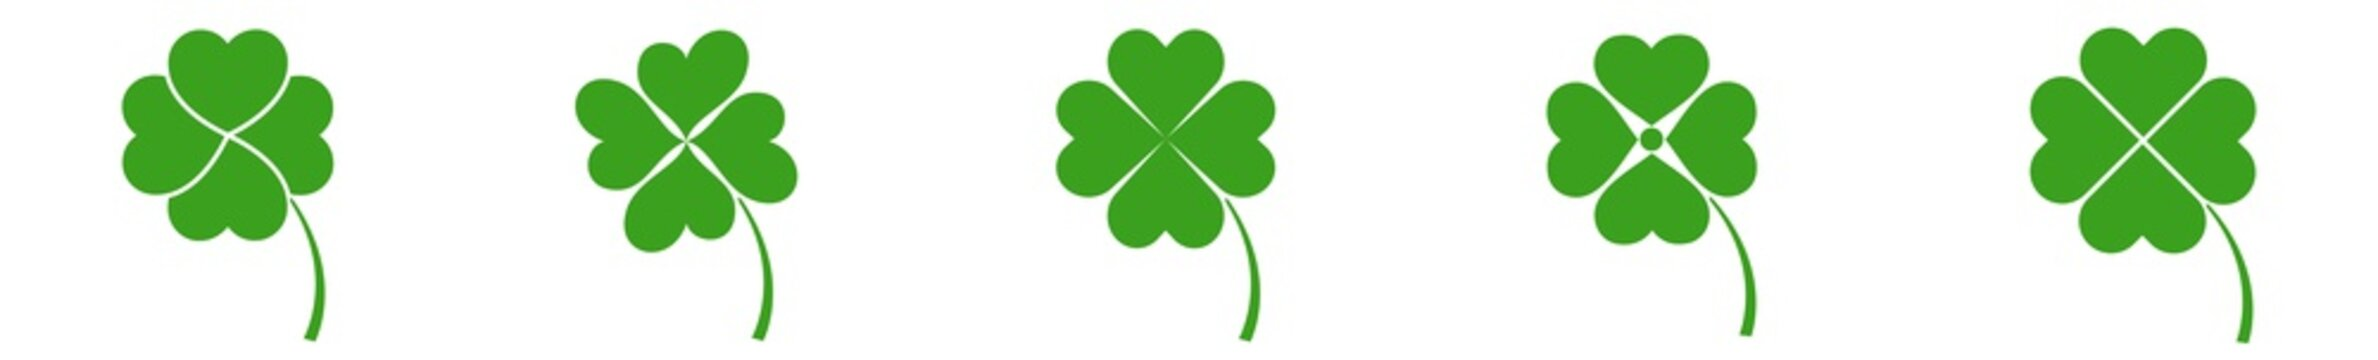 Shamrock Icon Green | Shamrocks | Four Leaf Clover | Irish Symbol | St Patrick's Day Logo | Luck Sign | Isolated | Variations